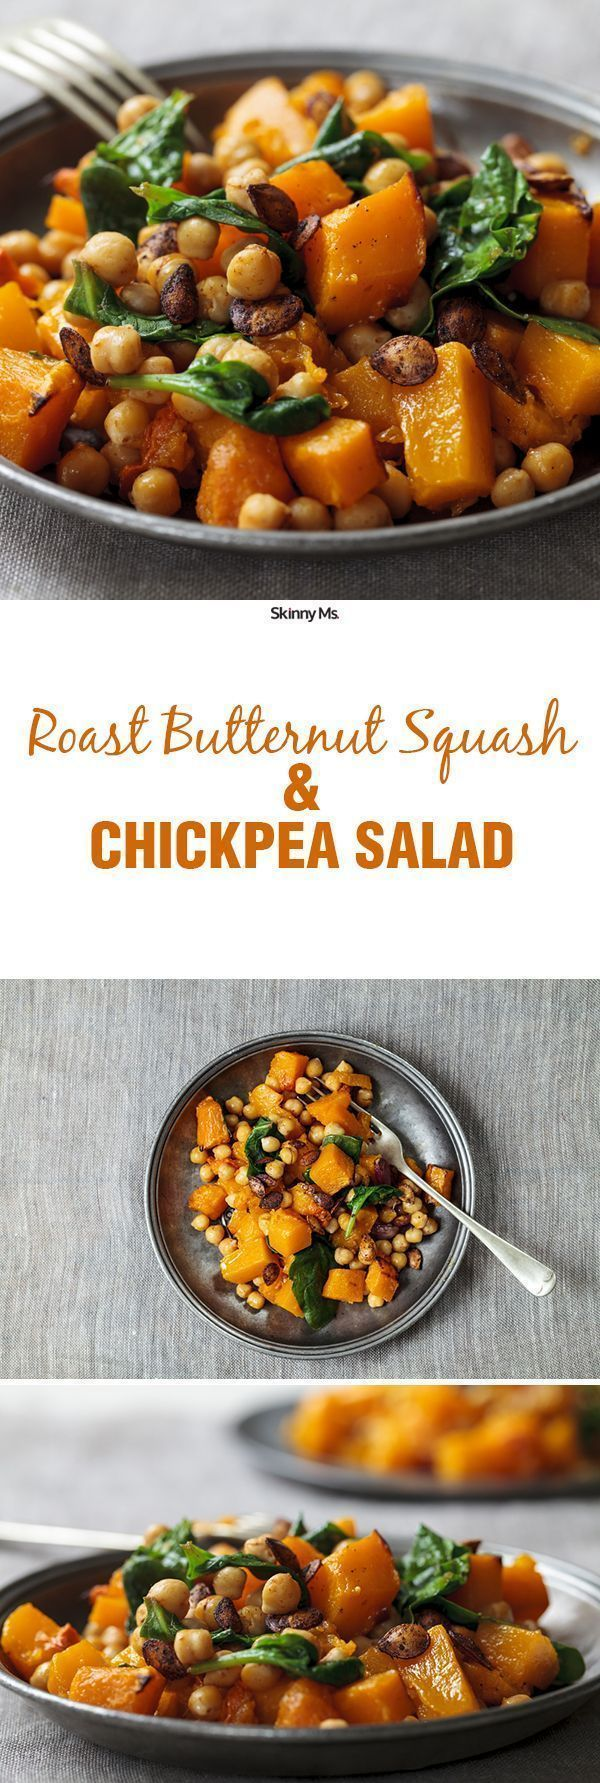 Try this Roasted Butternut Squash and Chickpea Salad for a healthy and filling fall superfood salad.